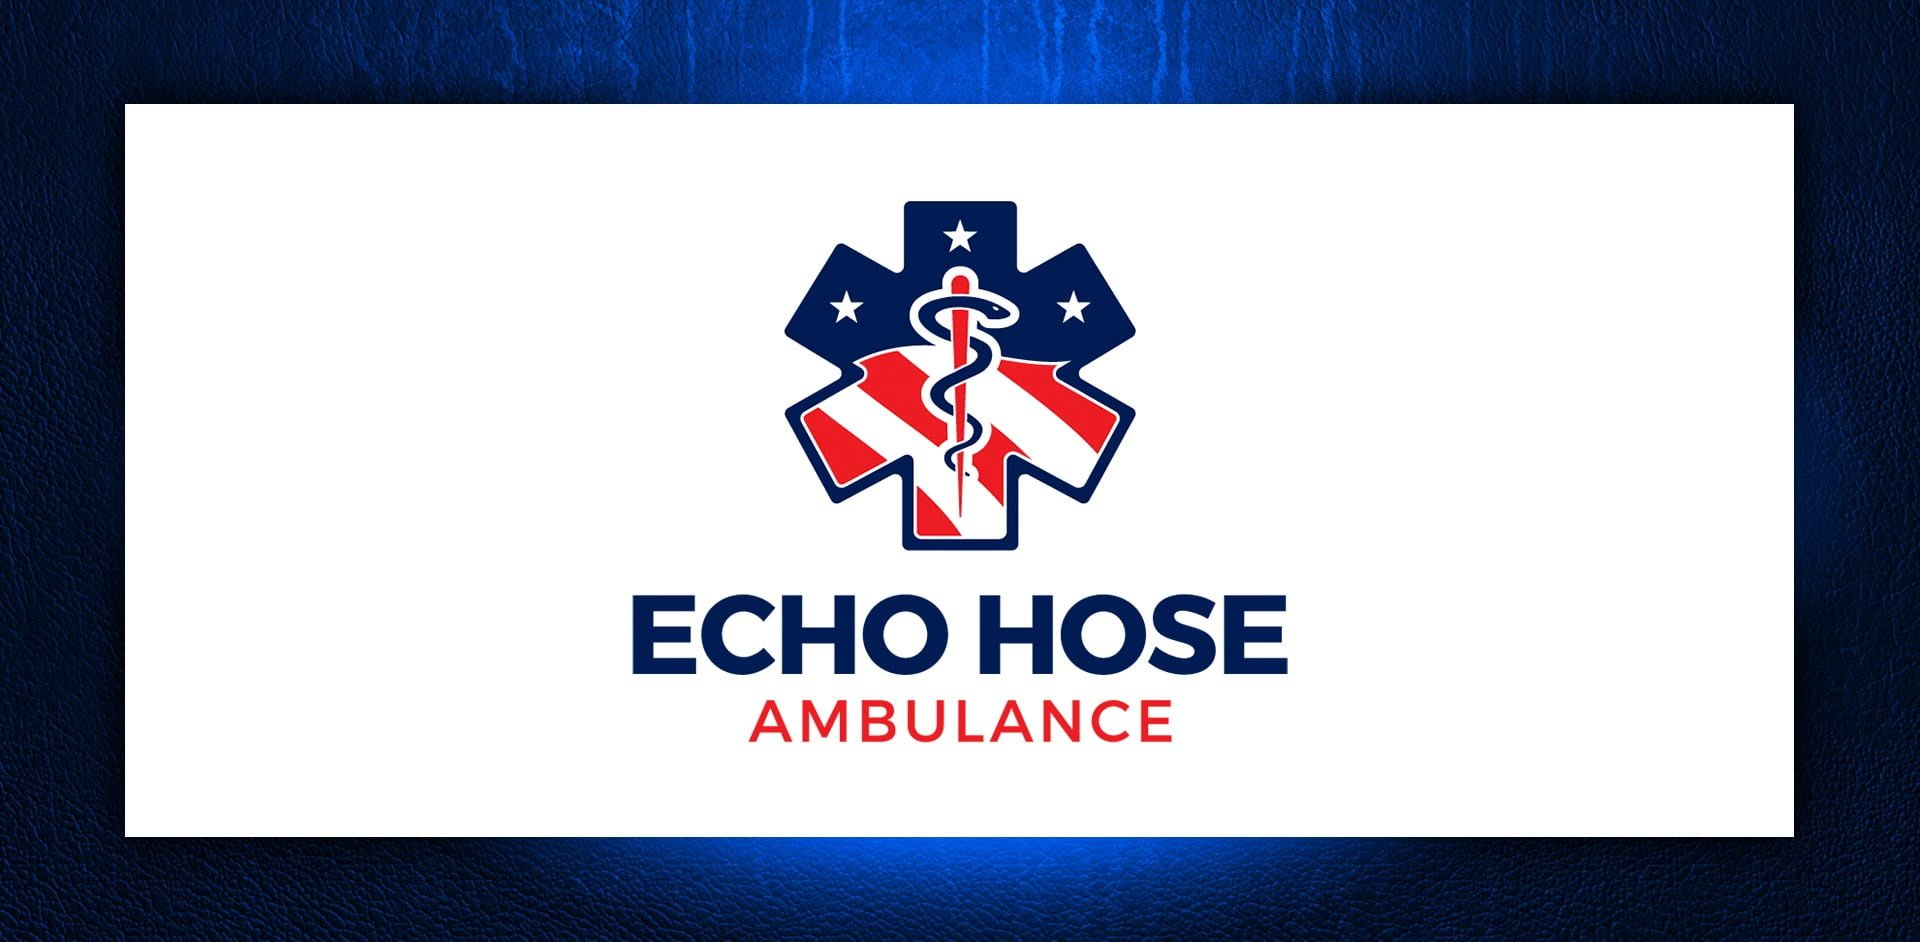 Echo Hose Ambulance